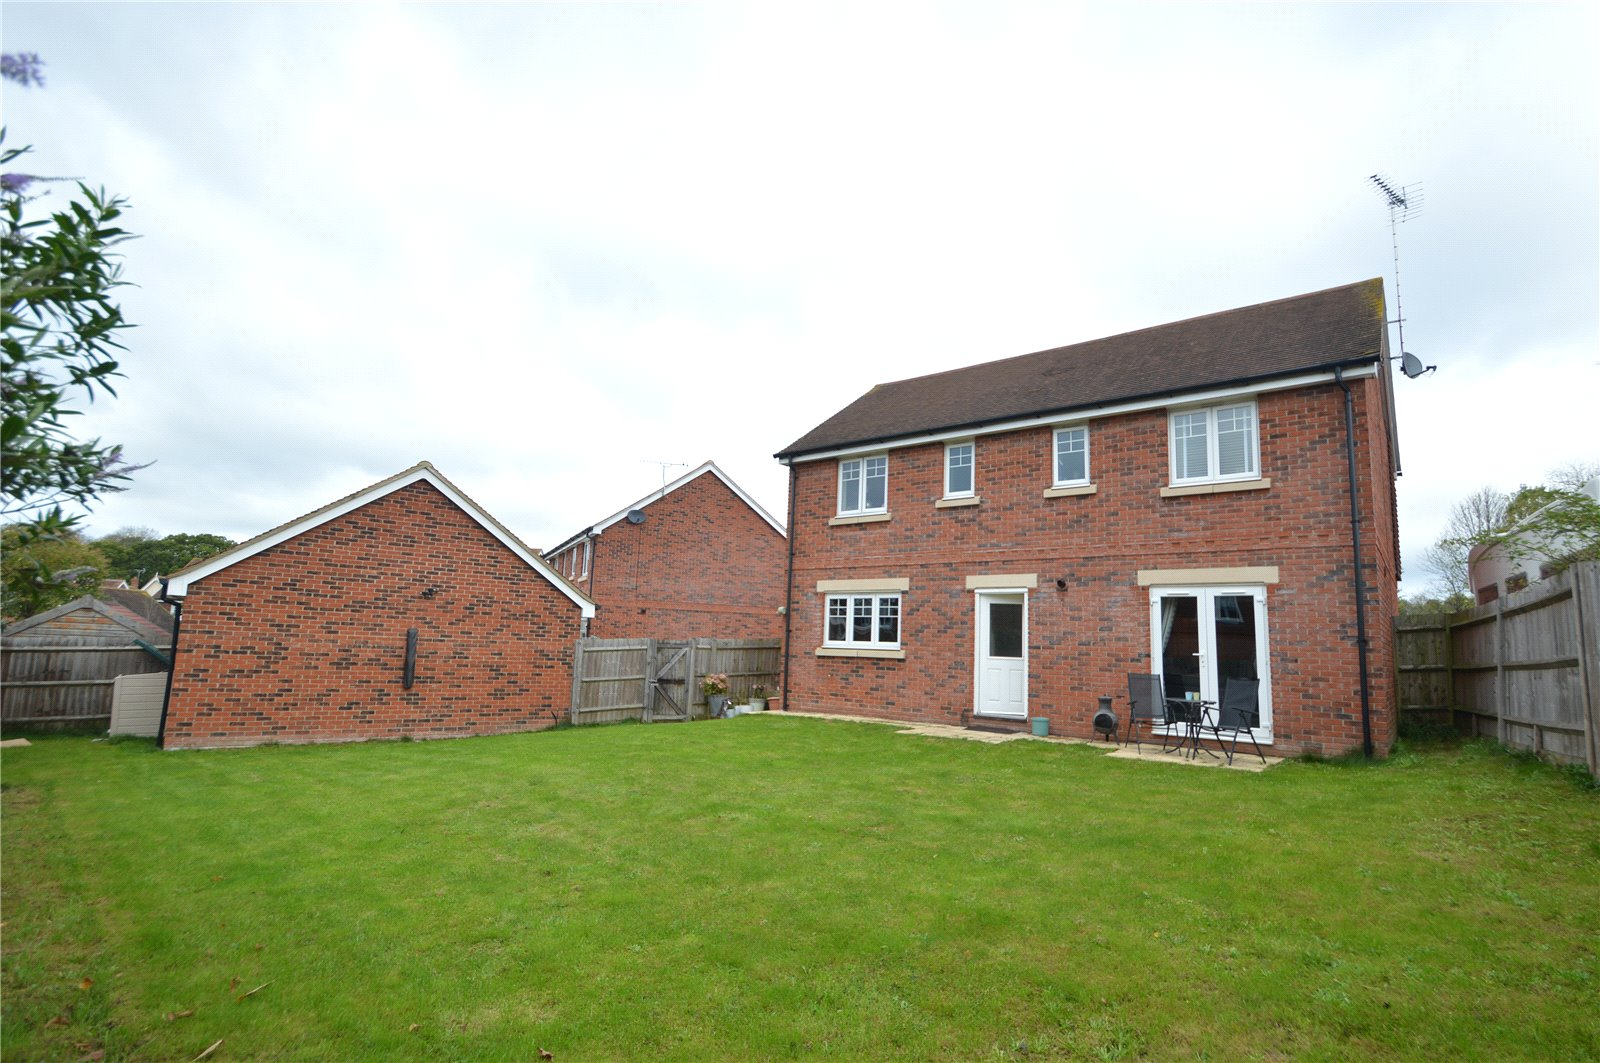 Property for sale | 4 Bedroom Detached House property in Wokingham, Wokingham, RG40 |  |